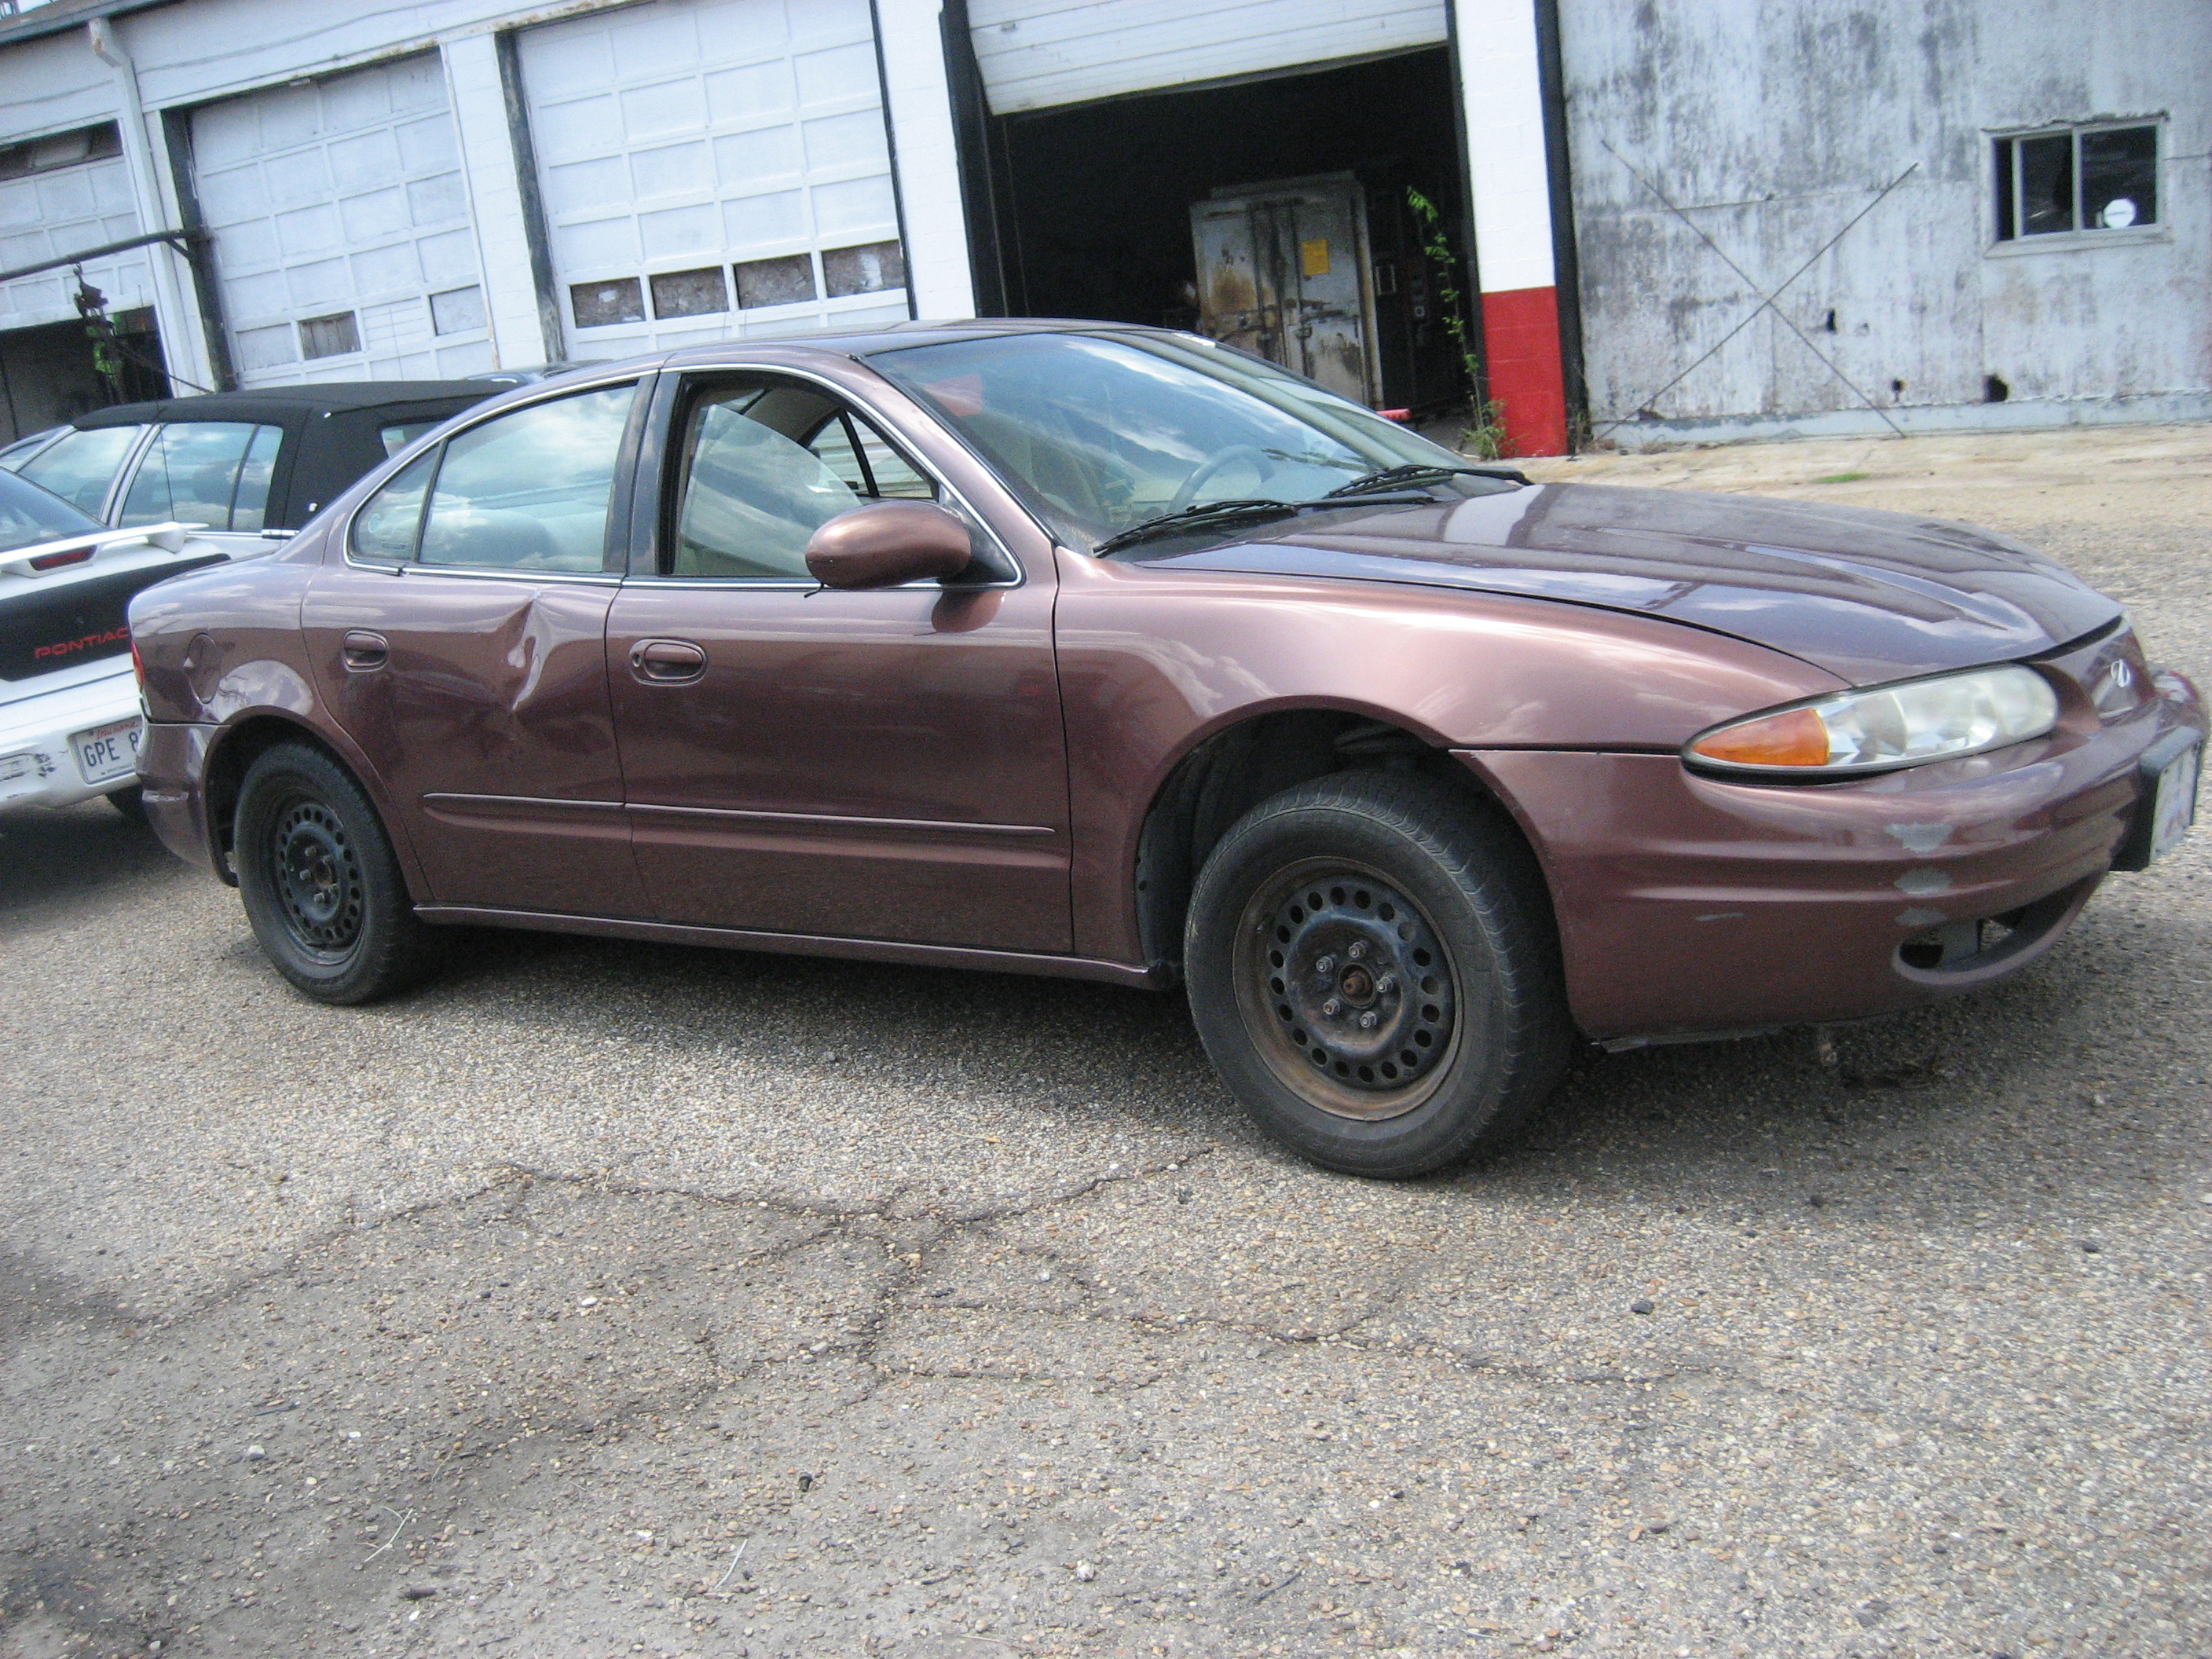 sold cheap 1999 maroon oldsmobile alero 1250. Black Bedroom Furniture Sets. Home Design Ideas